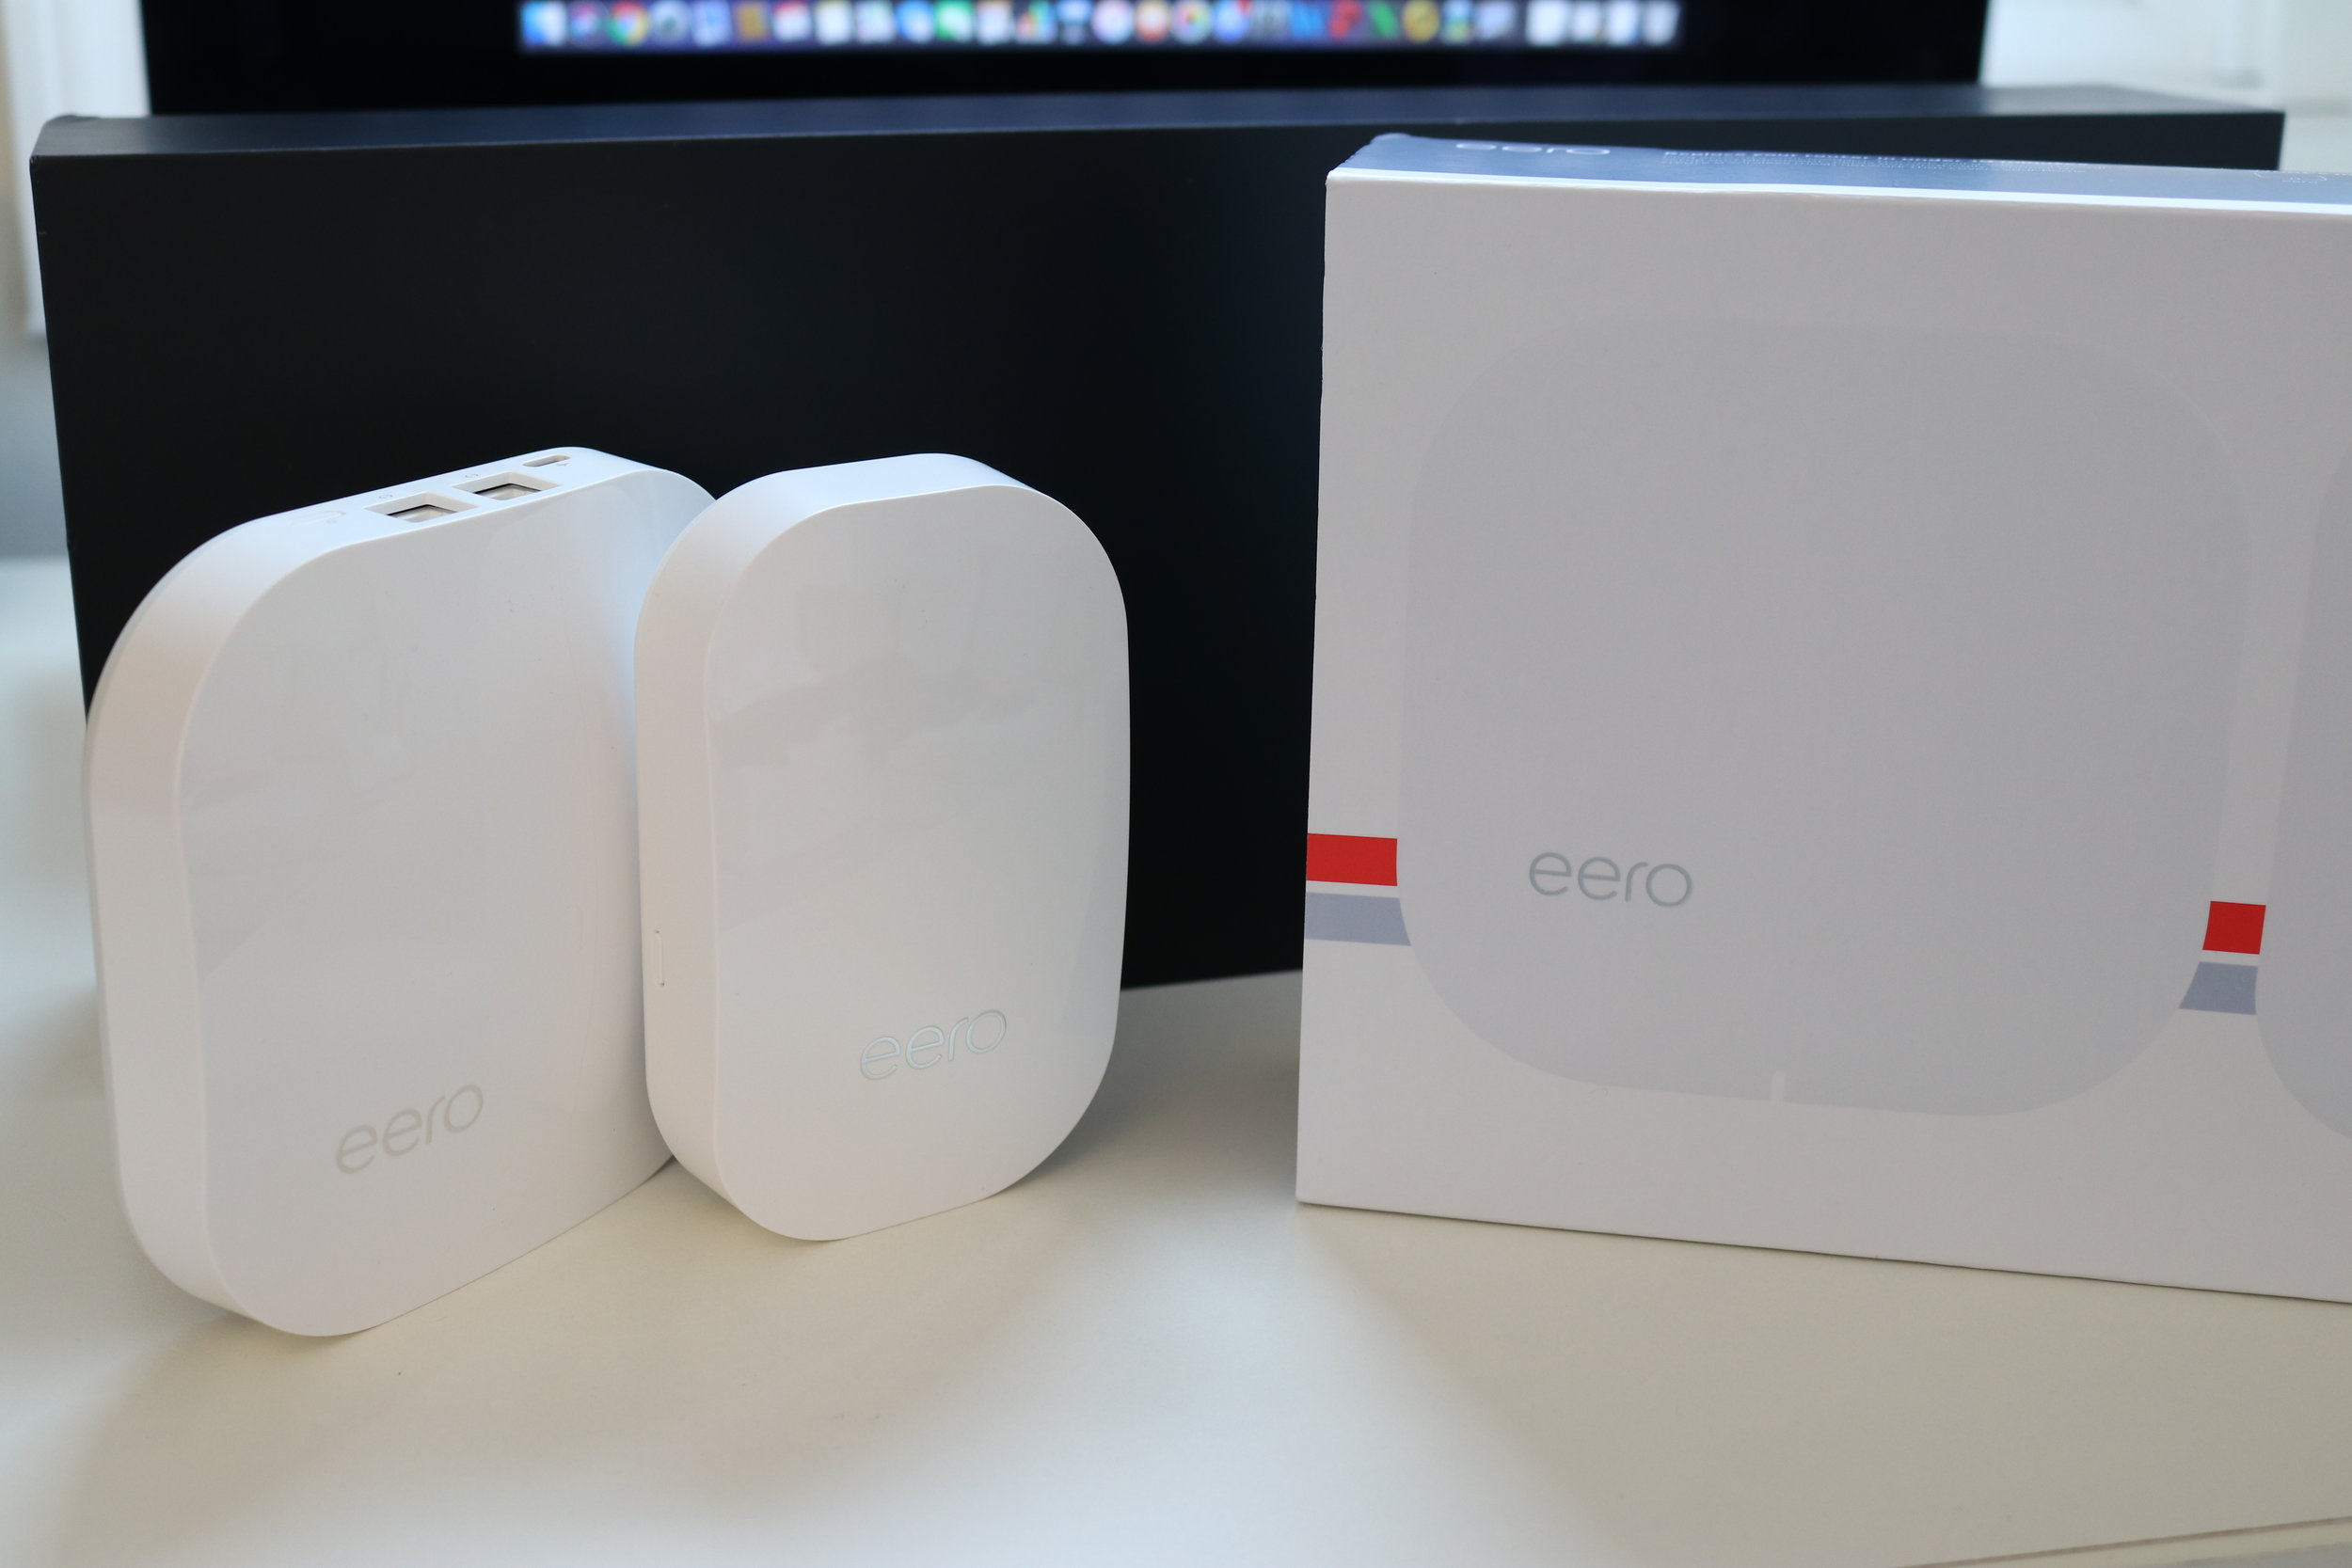 Best WiFi router to use with nest